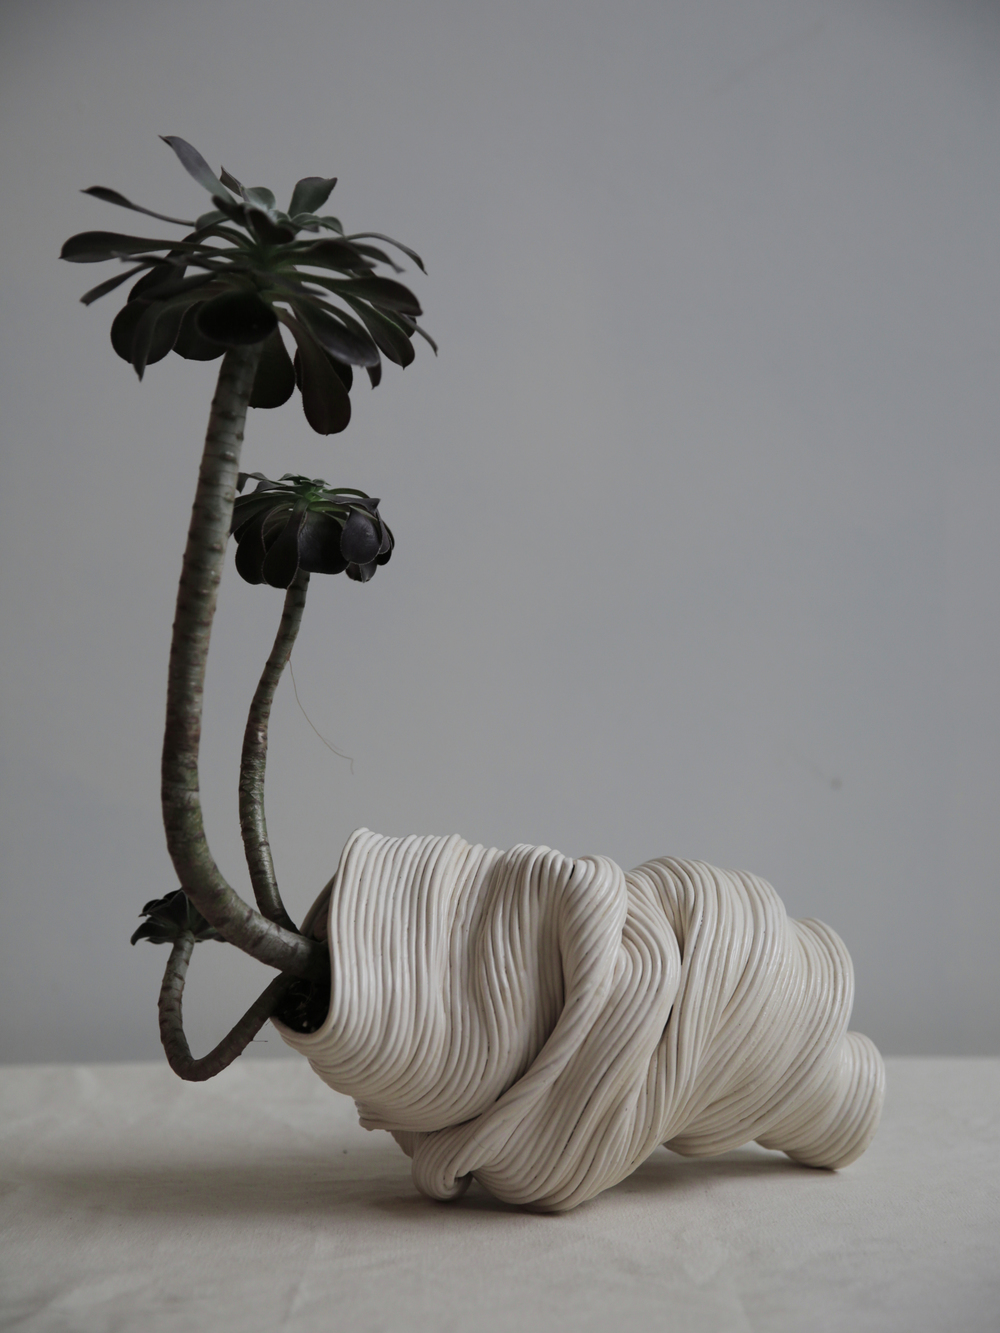 Reclining vessel,  2016  Ceramic with Aeonium Arboreum.